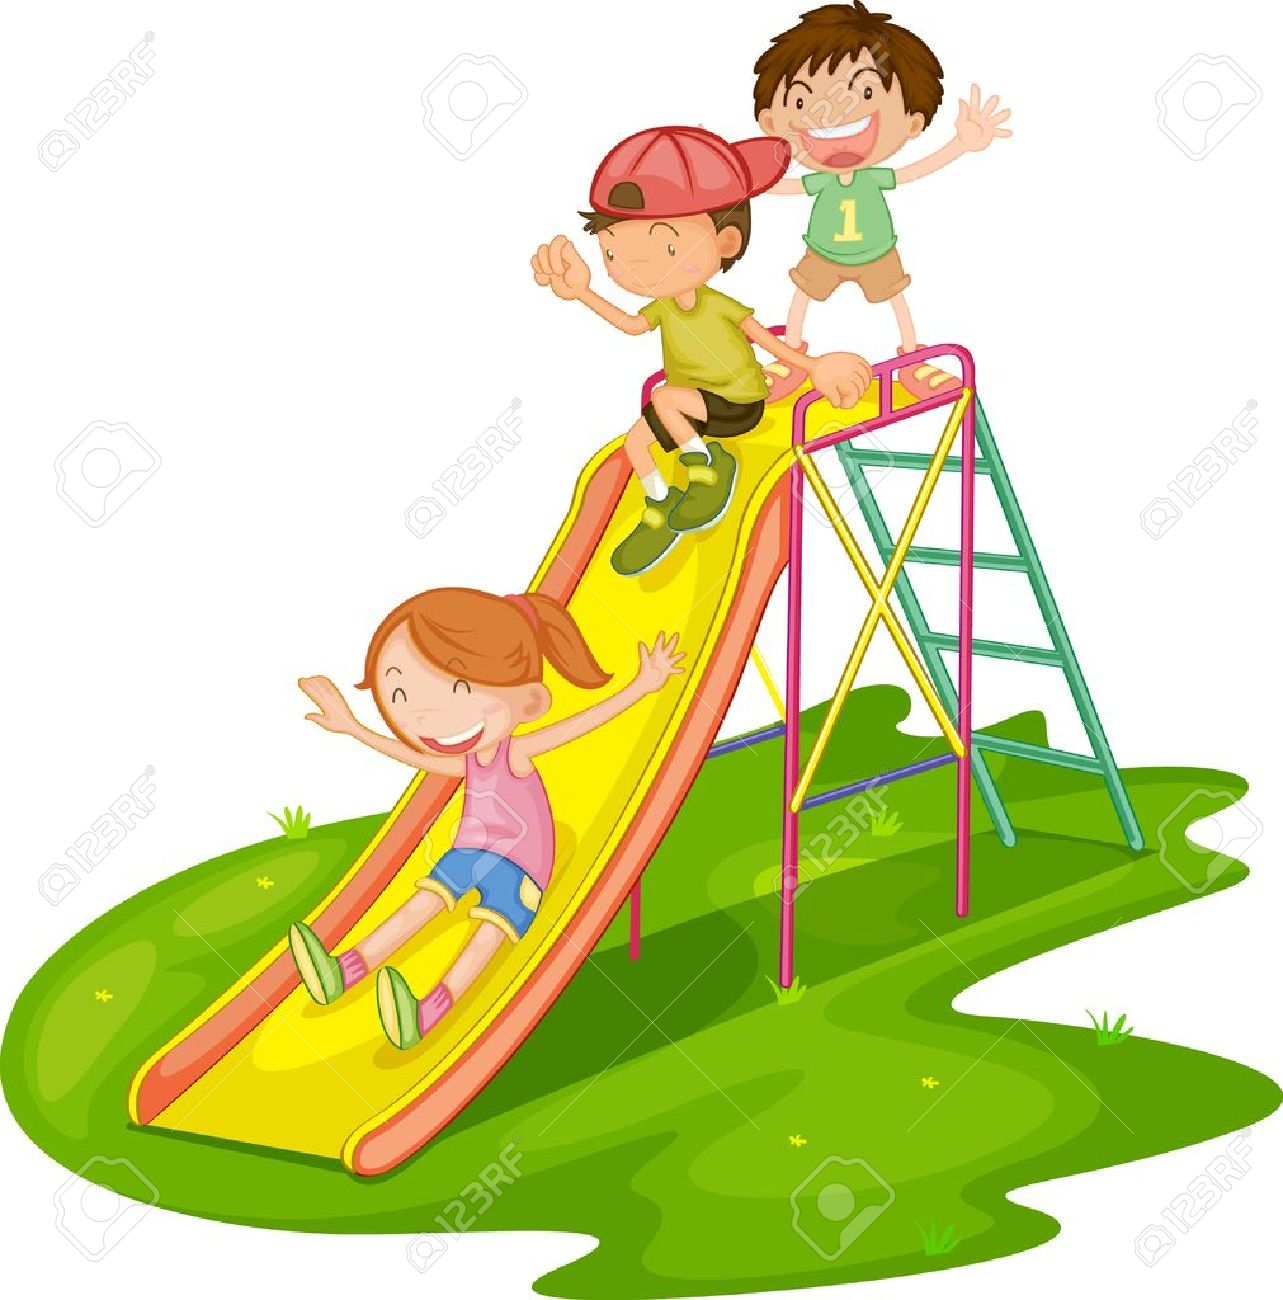 cartoon kids illustration of kids playing at a park - Cartoon Children Pictures